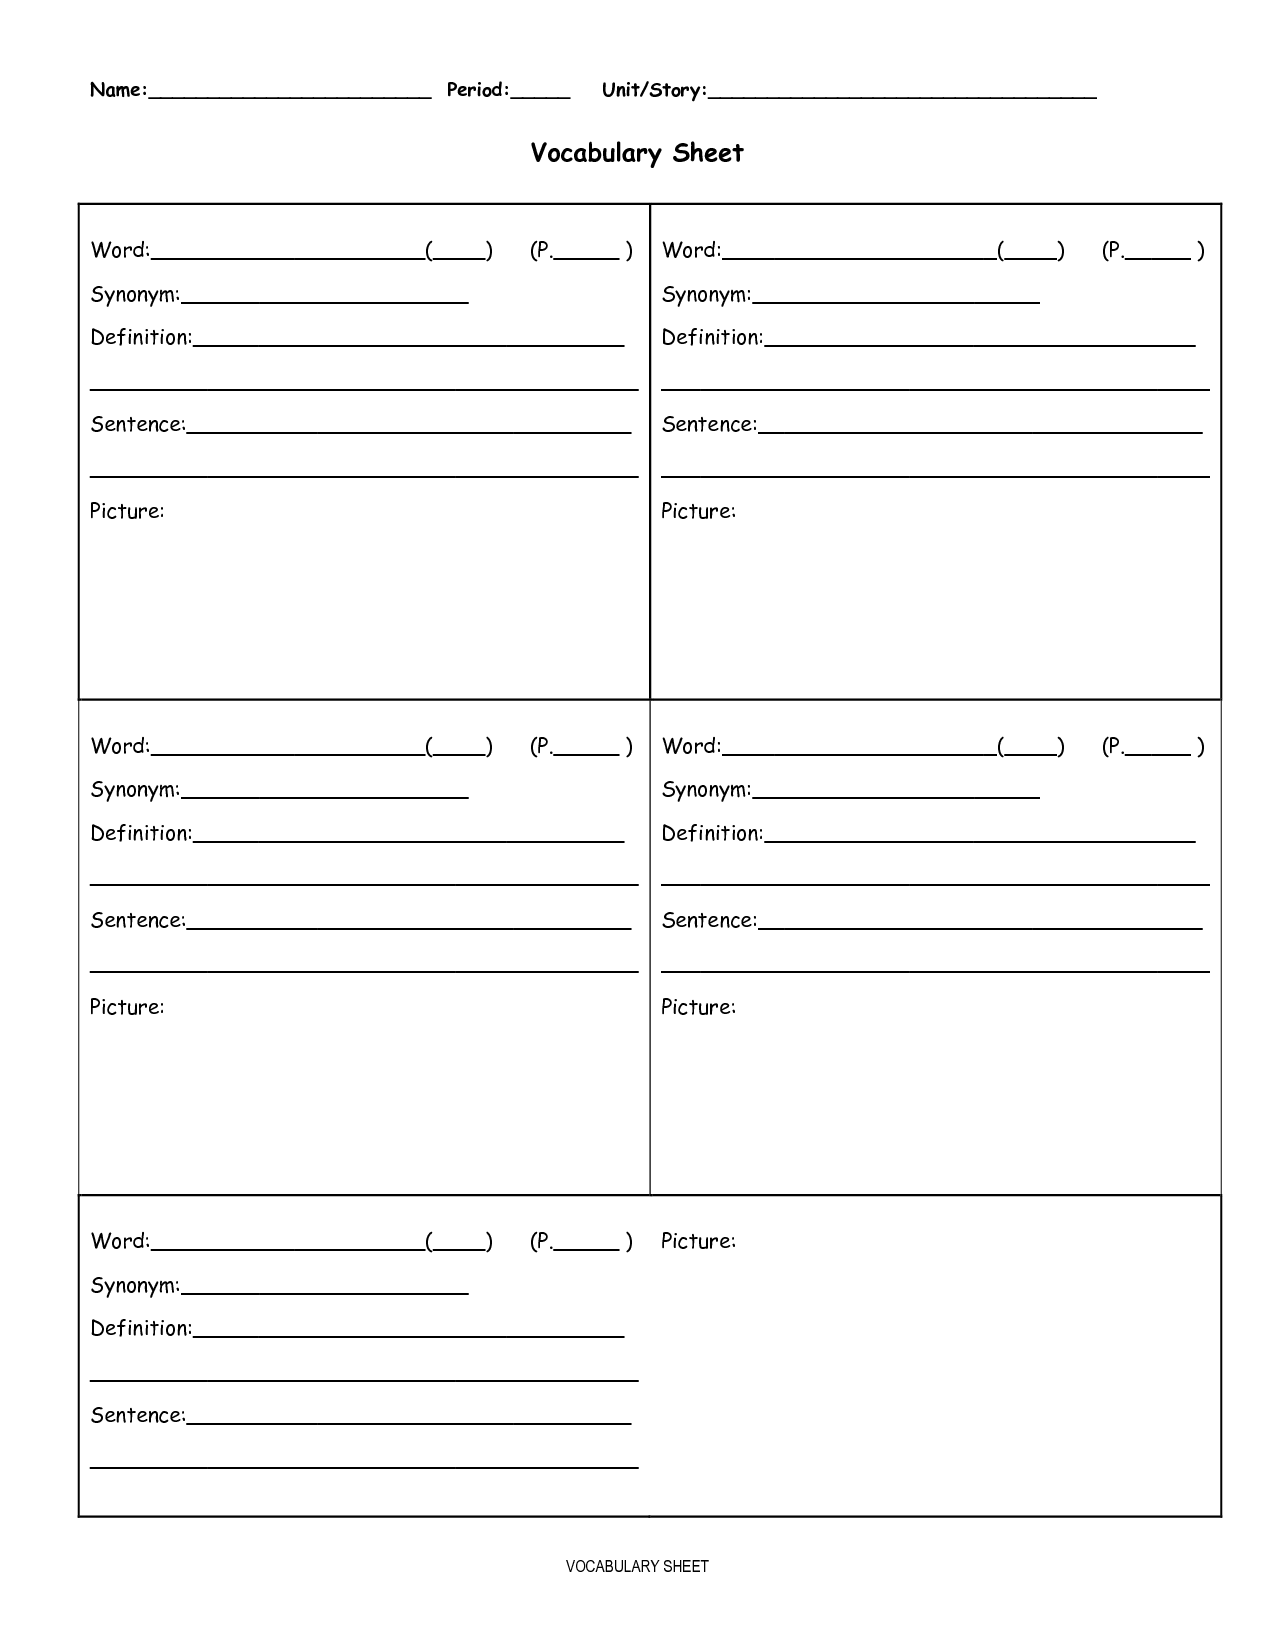 Blank Vocabulary Worksheet Template Doc